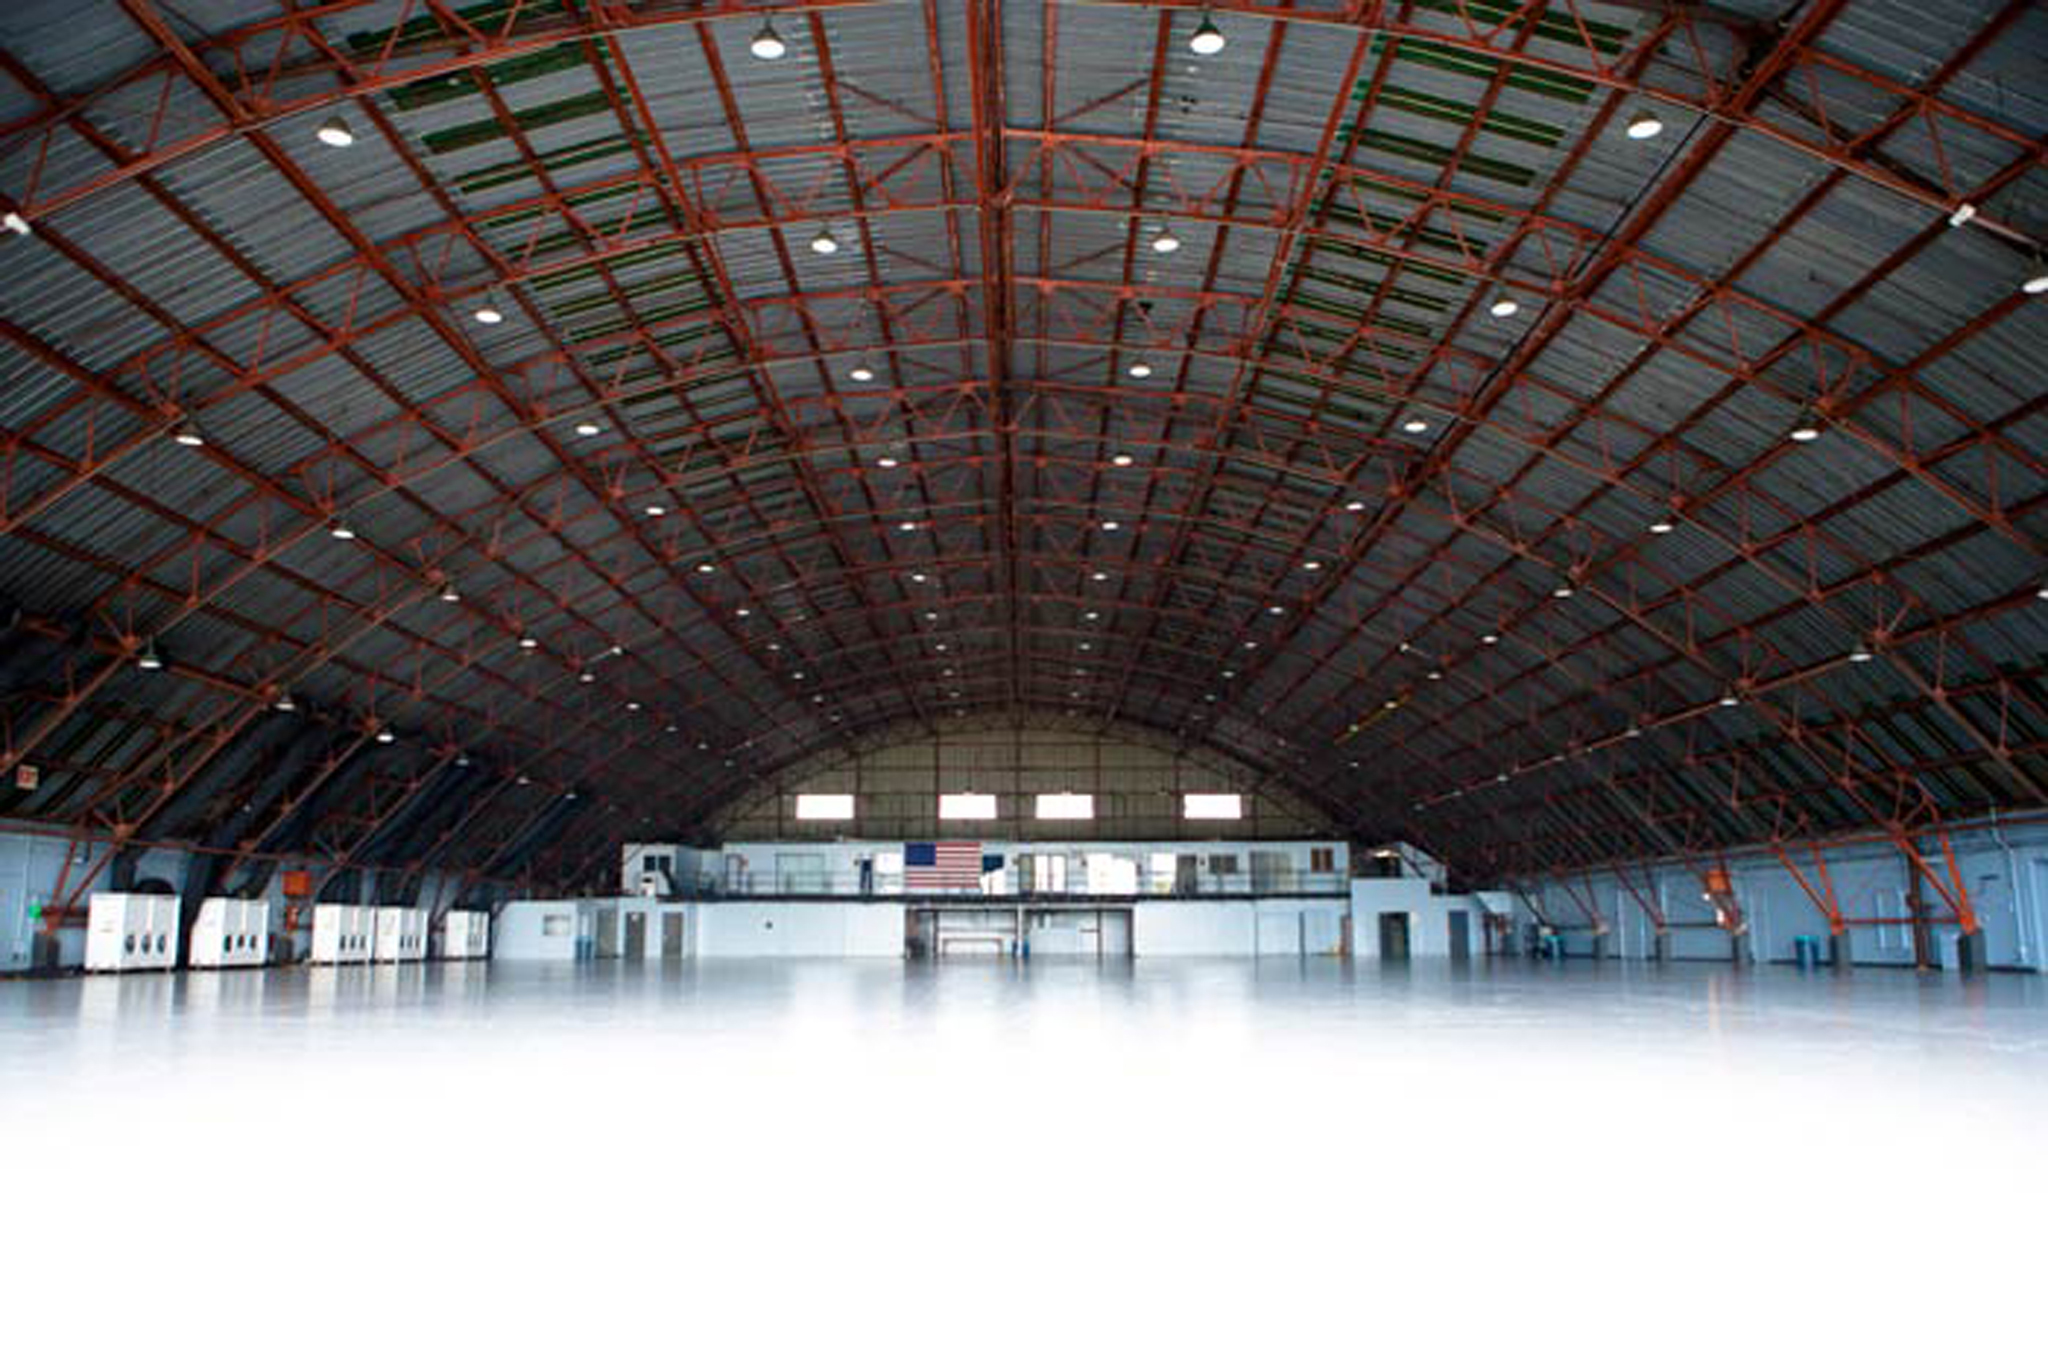 Barker Hangar Things To Do In Santa Monica Los Angeles